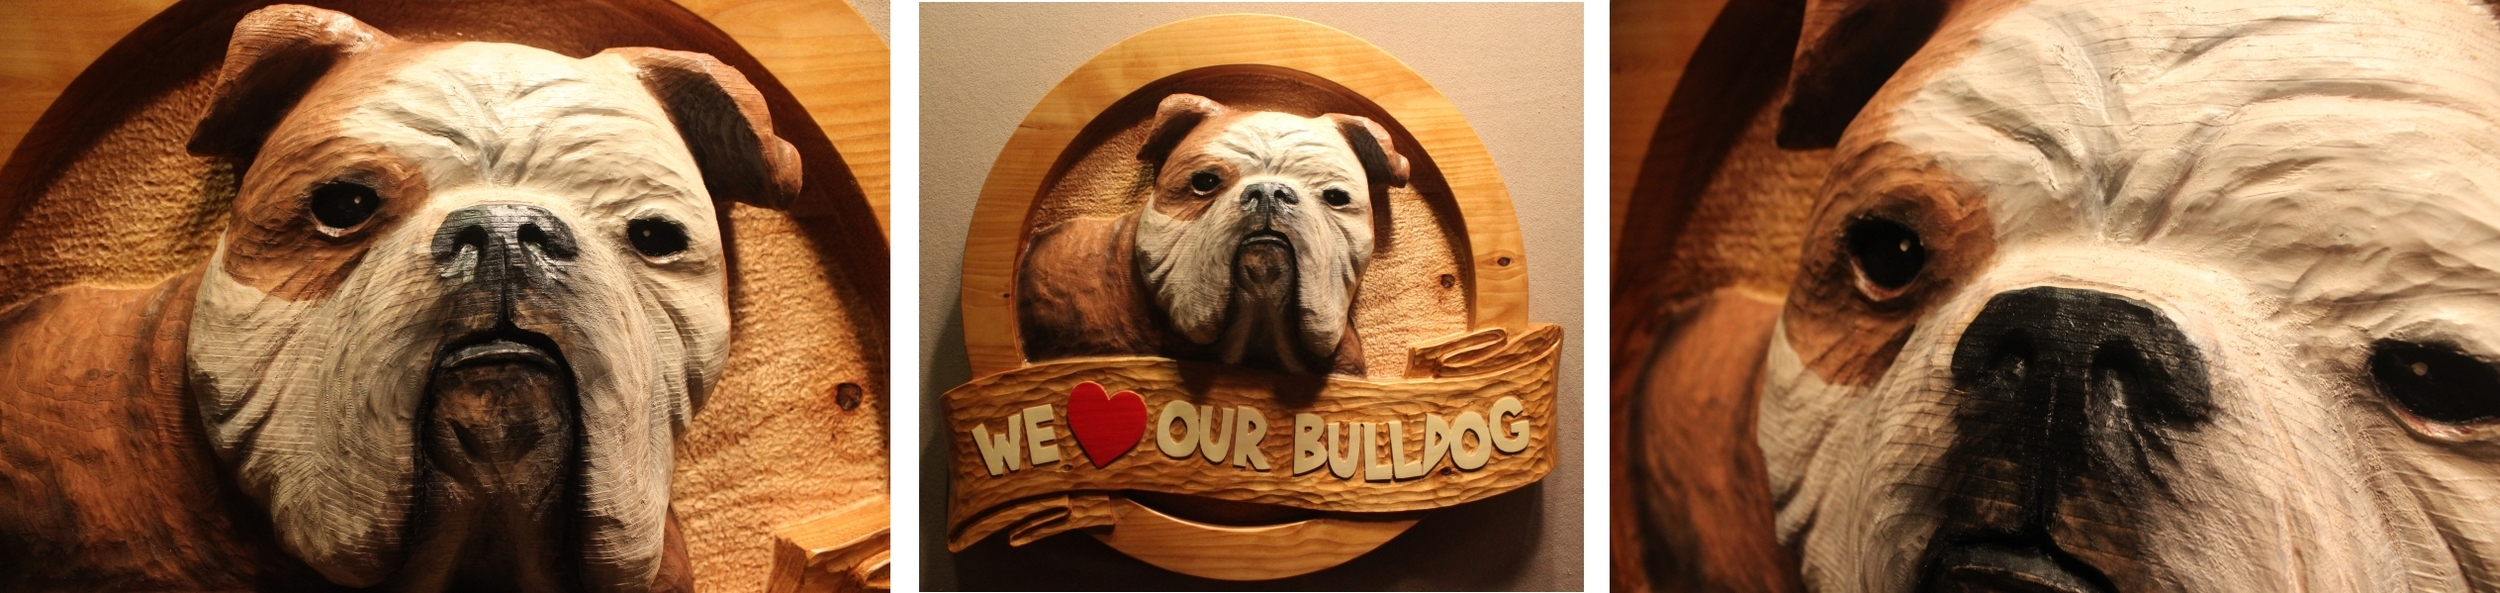 "Custom Carved Wooden Sign featuring an English Bulldog and custom carved text.  This wooden sign measures approx 36"" wide and is 5"" thick."